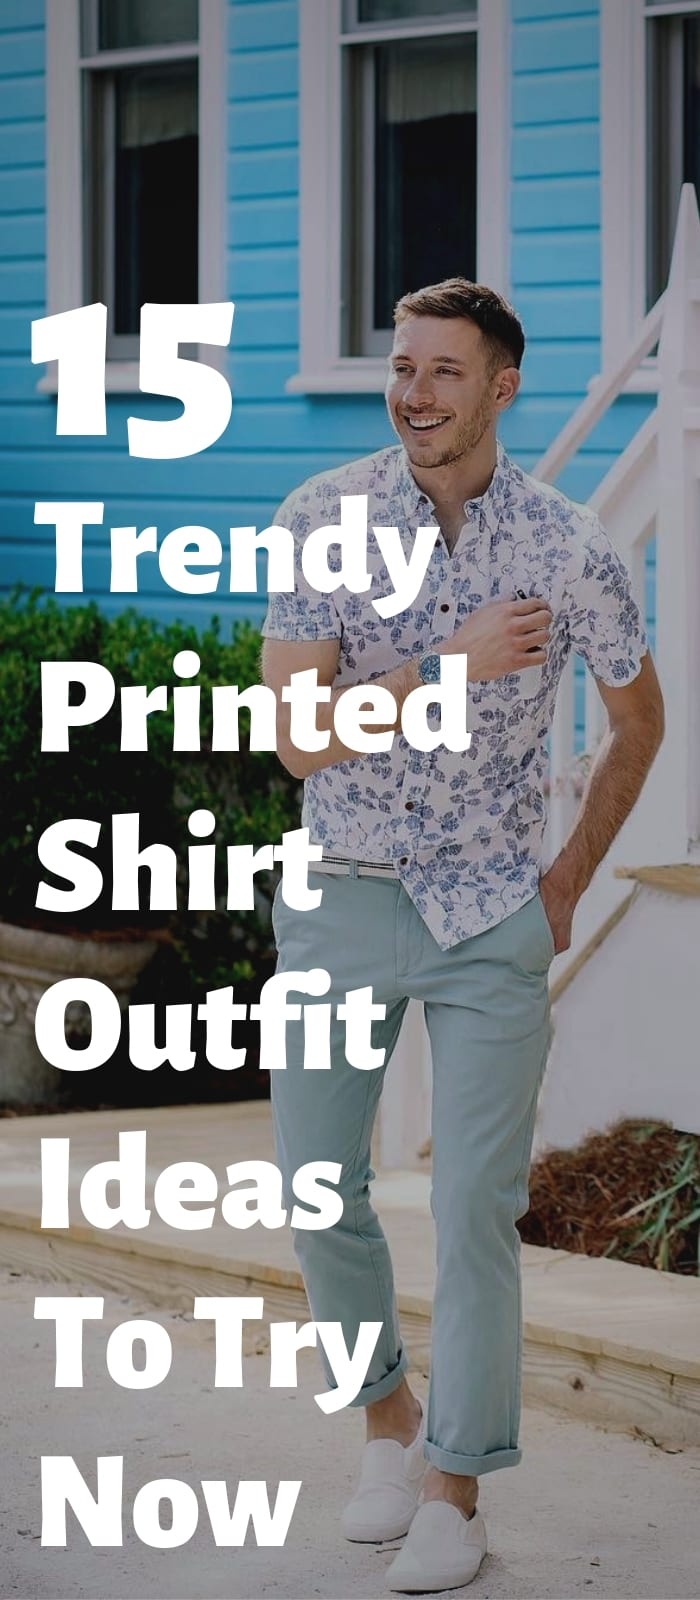 15 Trendy Printed Shirt Outfit Ideas To Try Now